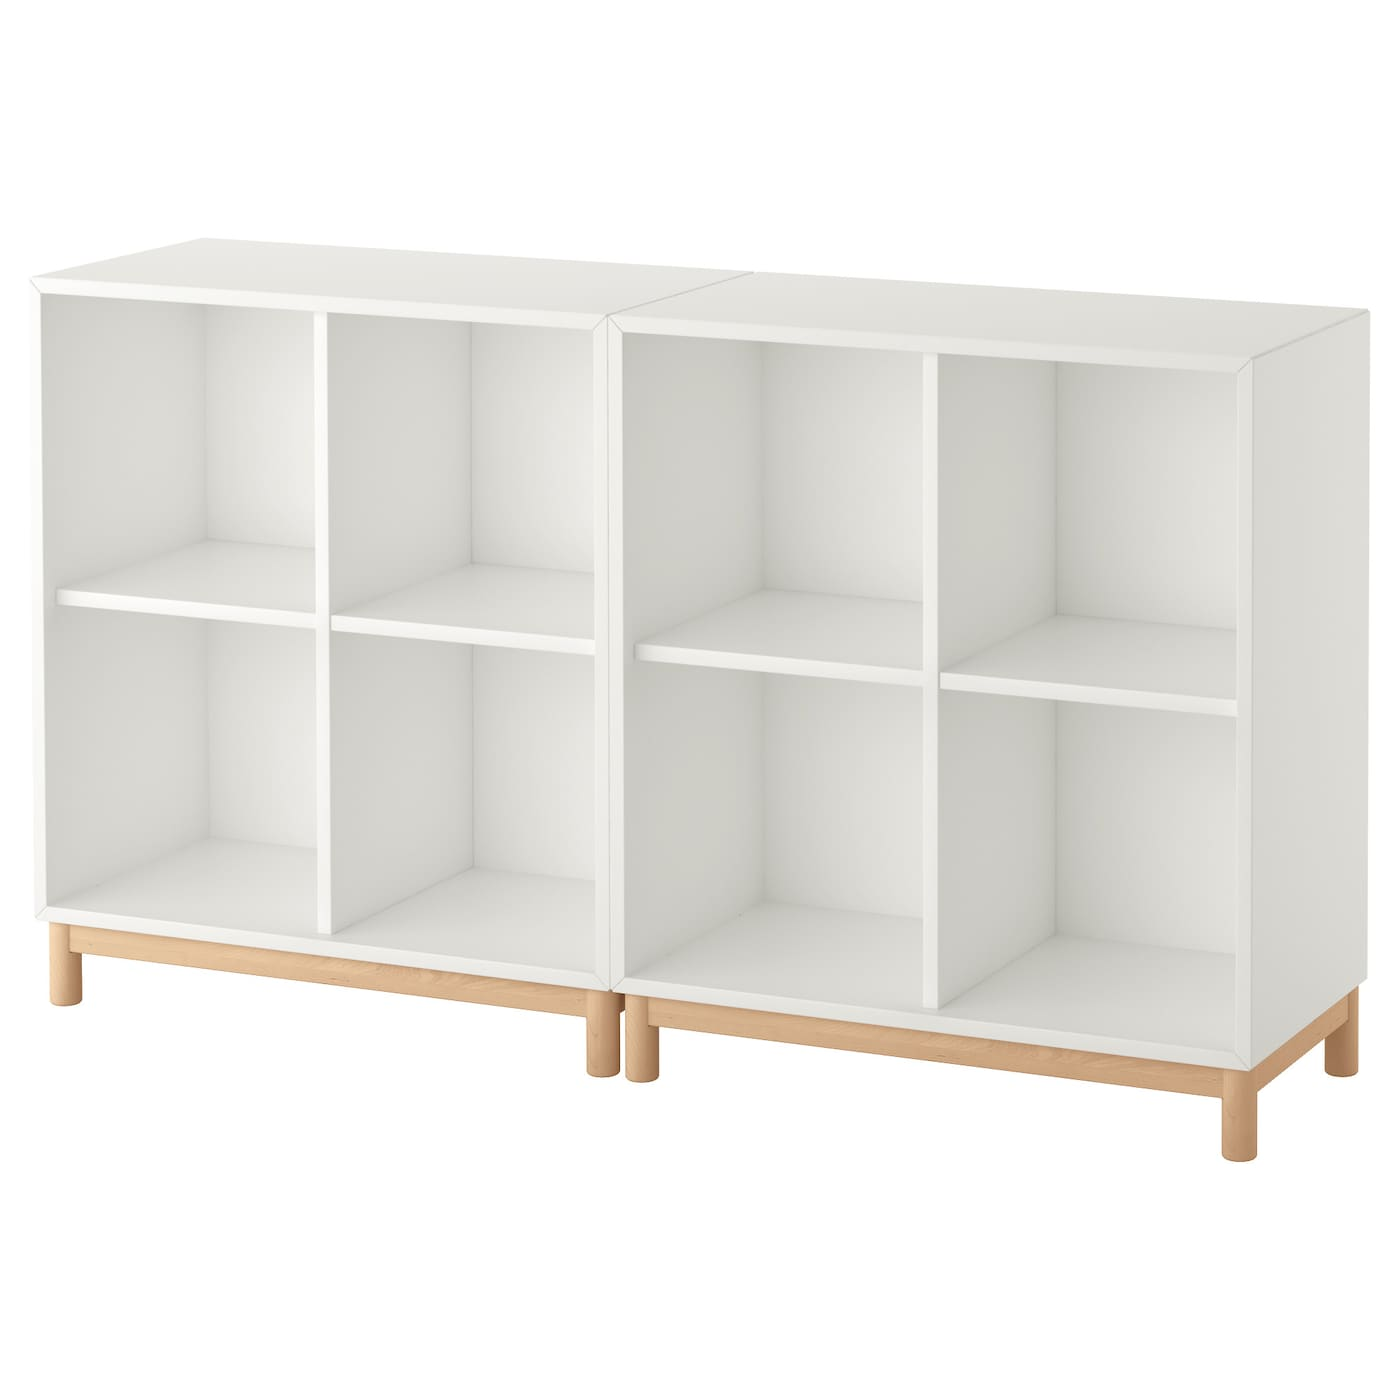 eket cabinet combination with legs white 140x35x80 cm ikea. Black Bedroom Furniture Sets. Home Design Ideas